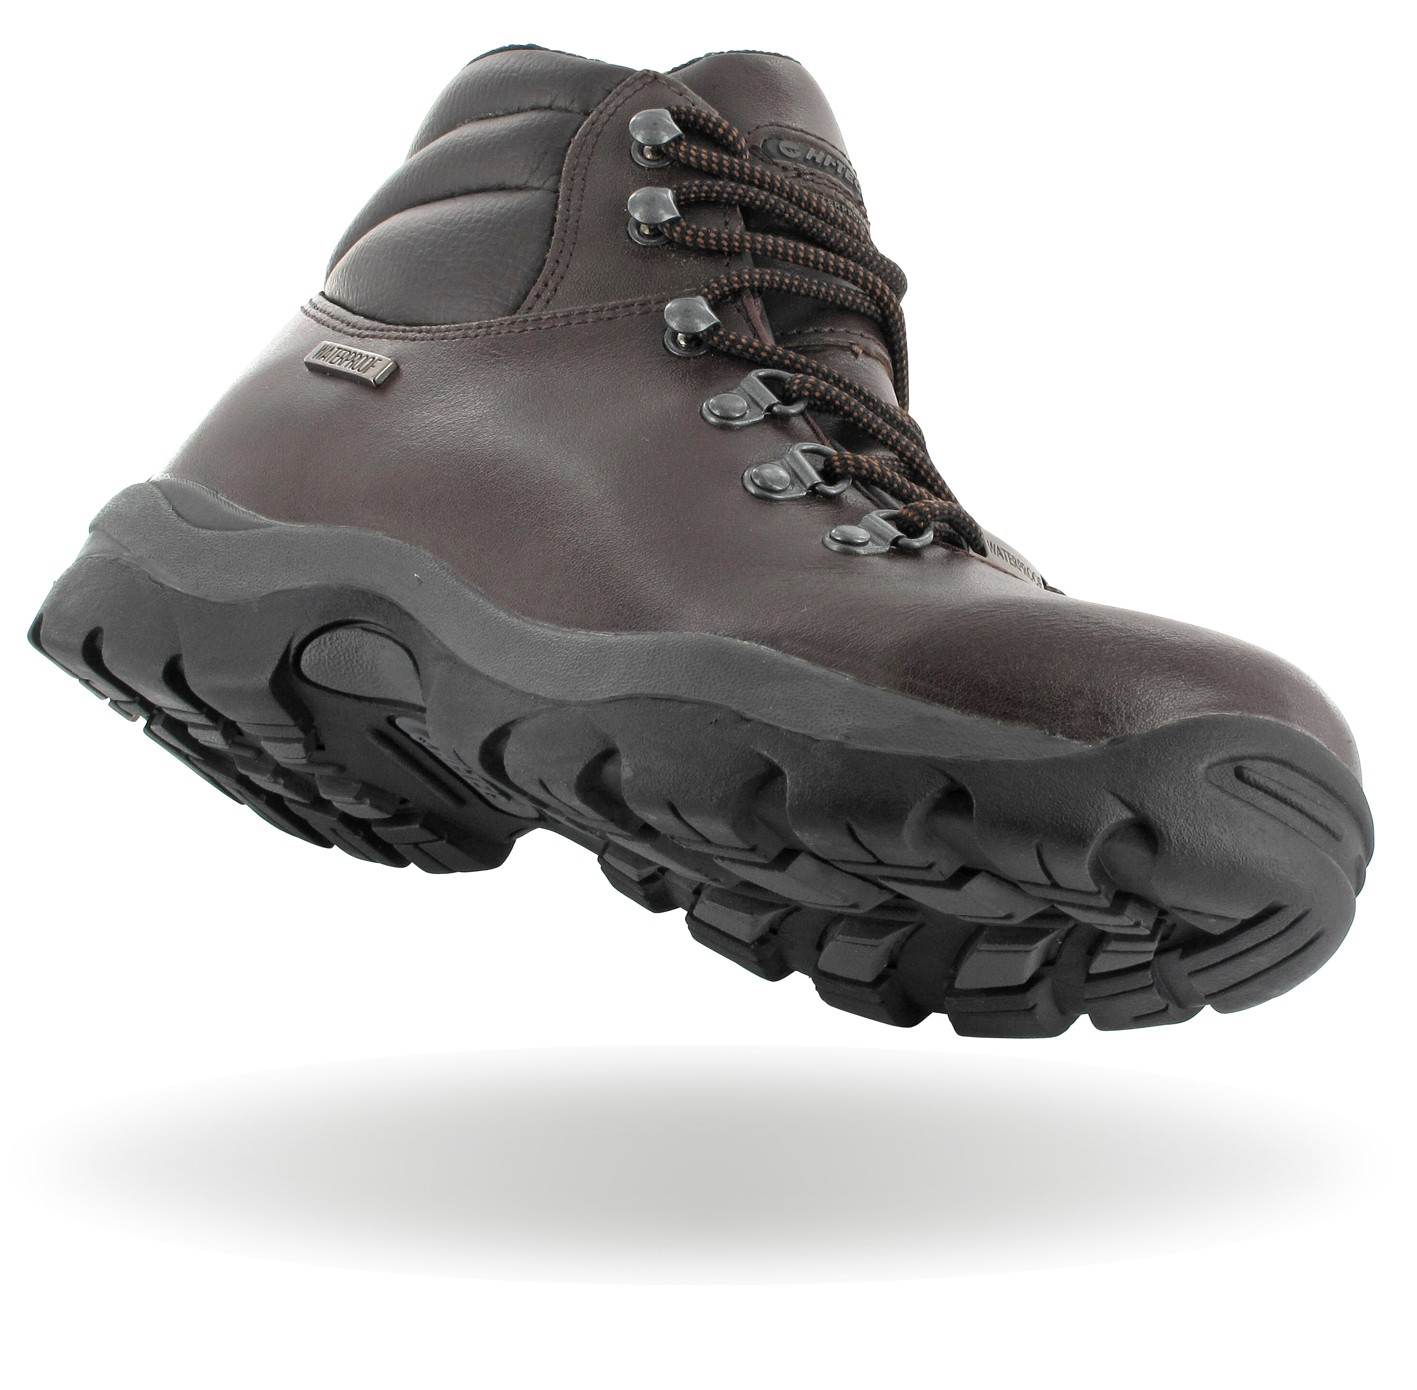 Mens Hi Tec Eurotrek Waterproof Hiking Boot Review Best